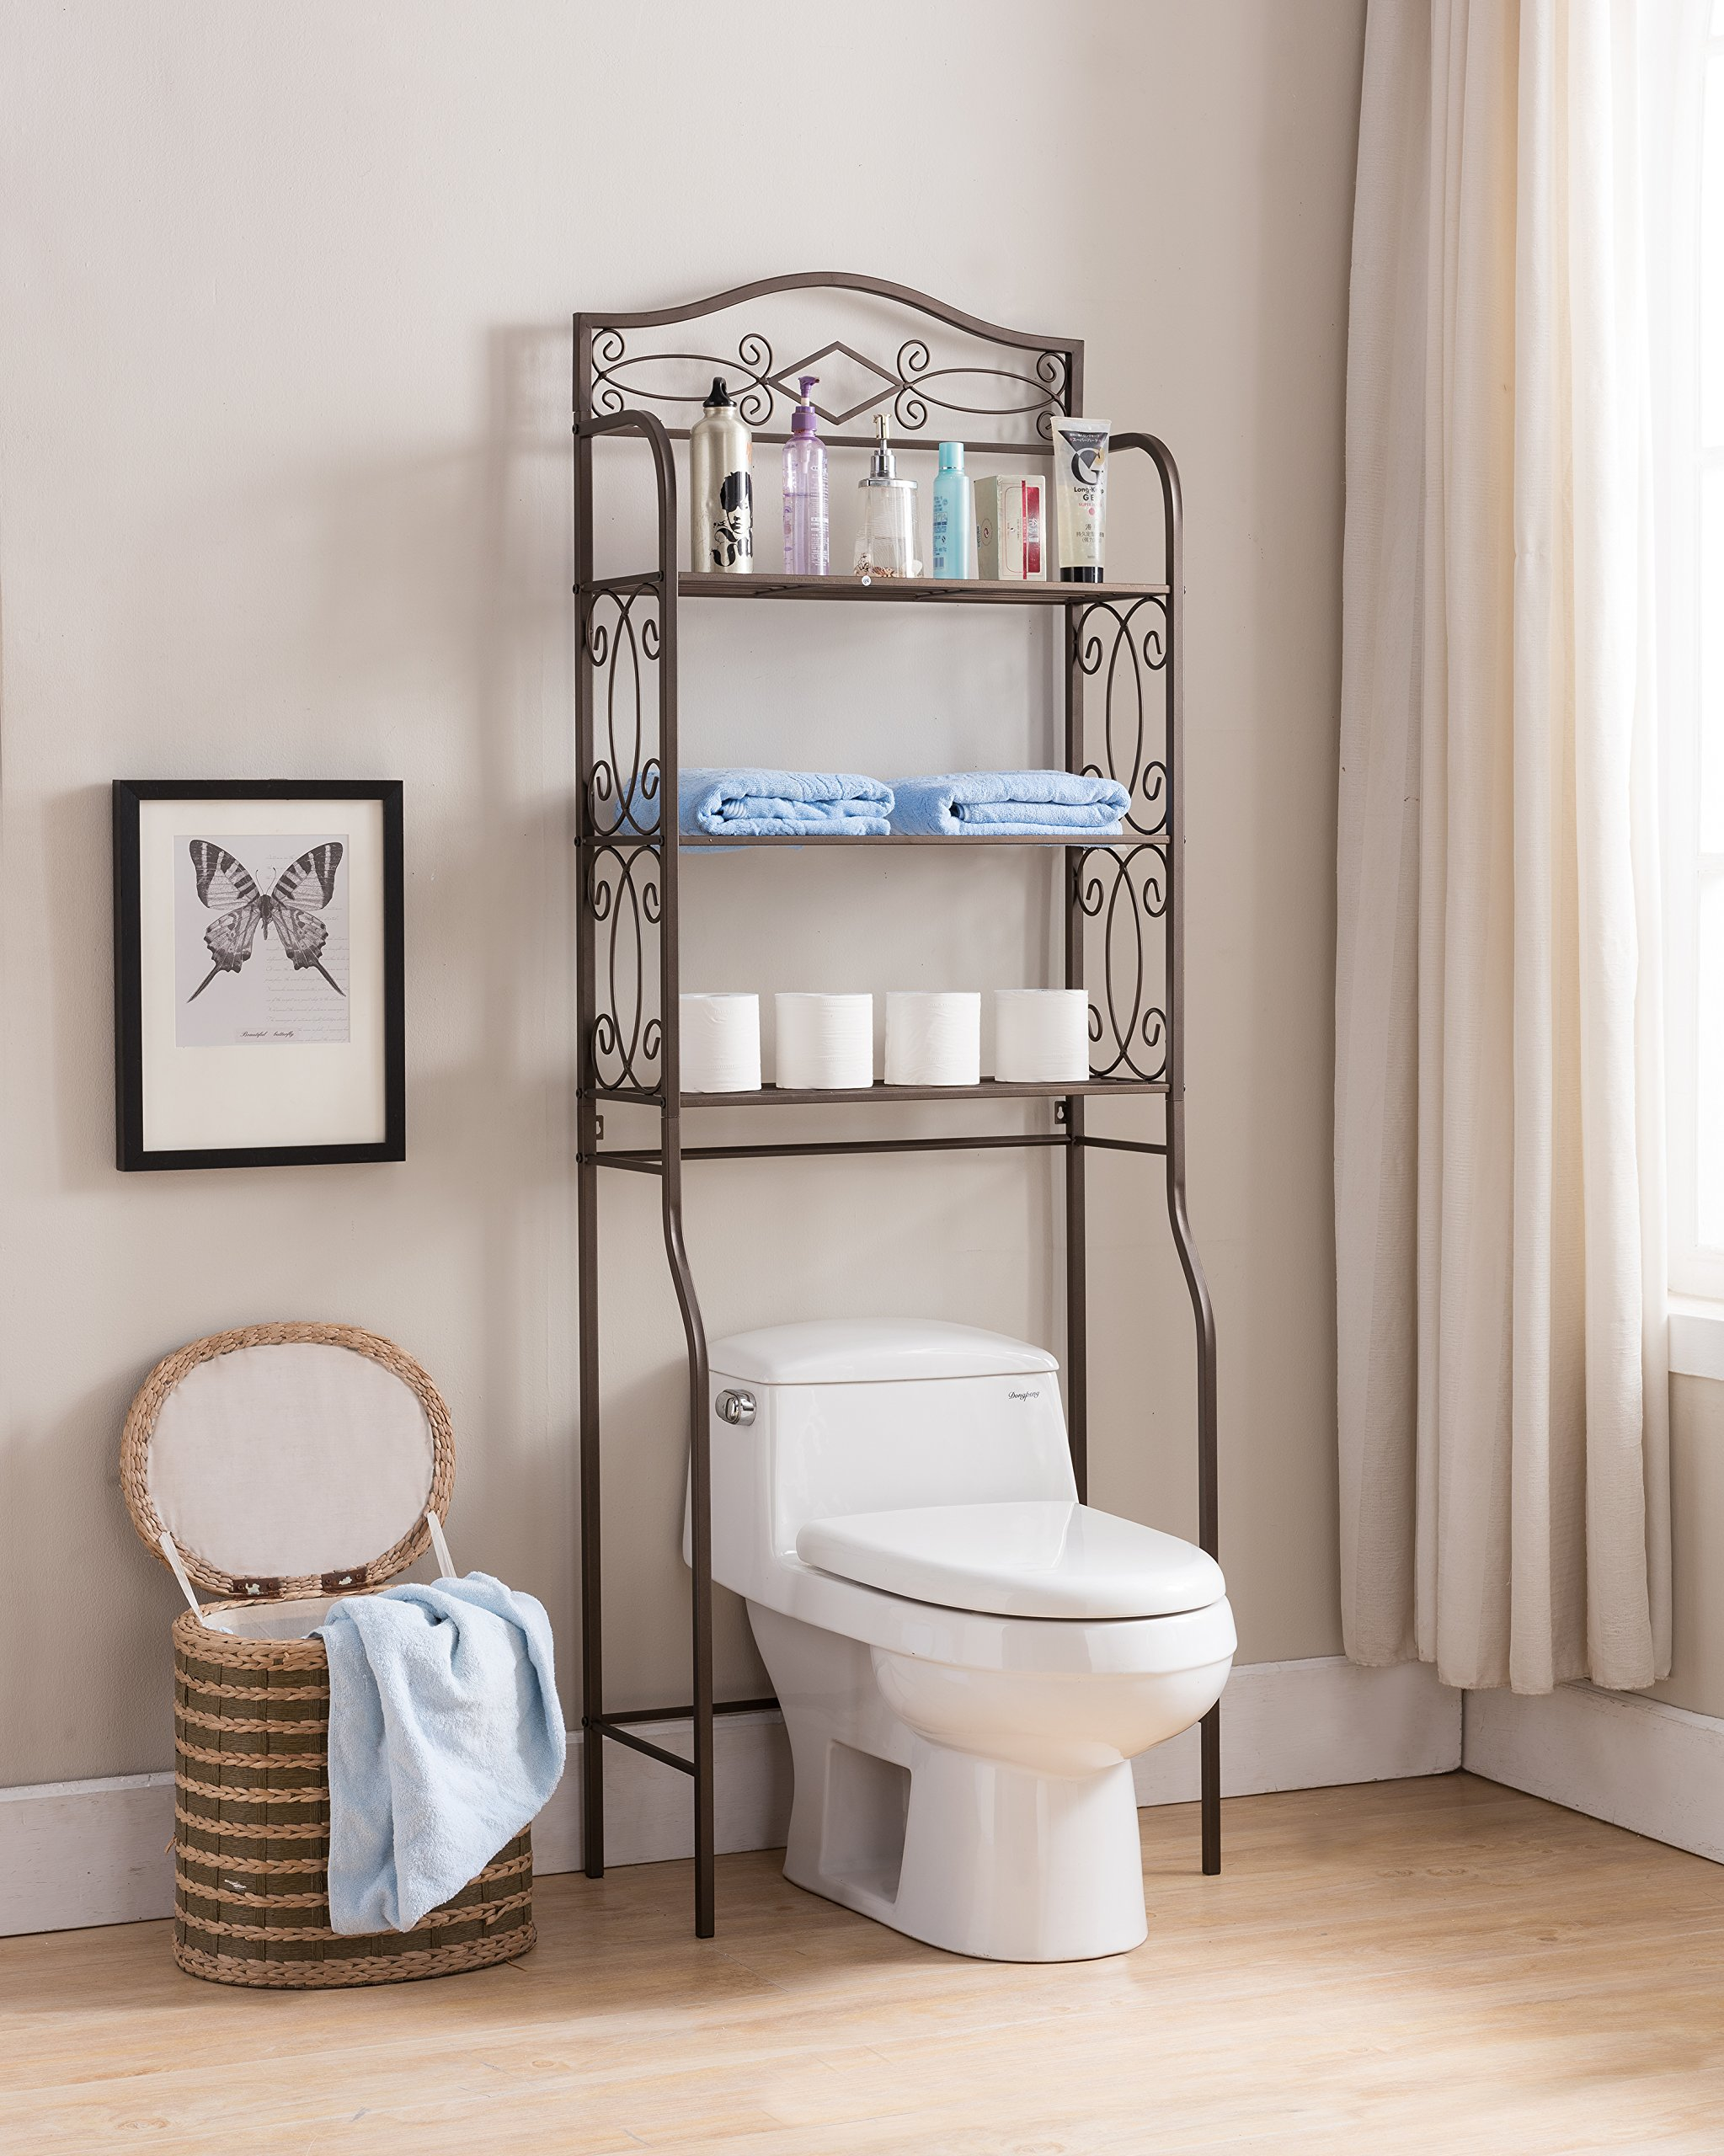 Kings Brand Furniture - Over The Toilet Storage Etagere Bathroom Rack Shelves Organizer, Pewter by Kings Brand Furniture